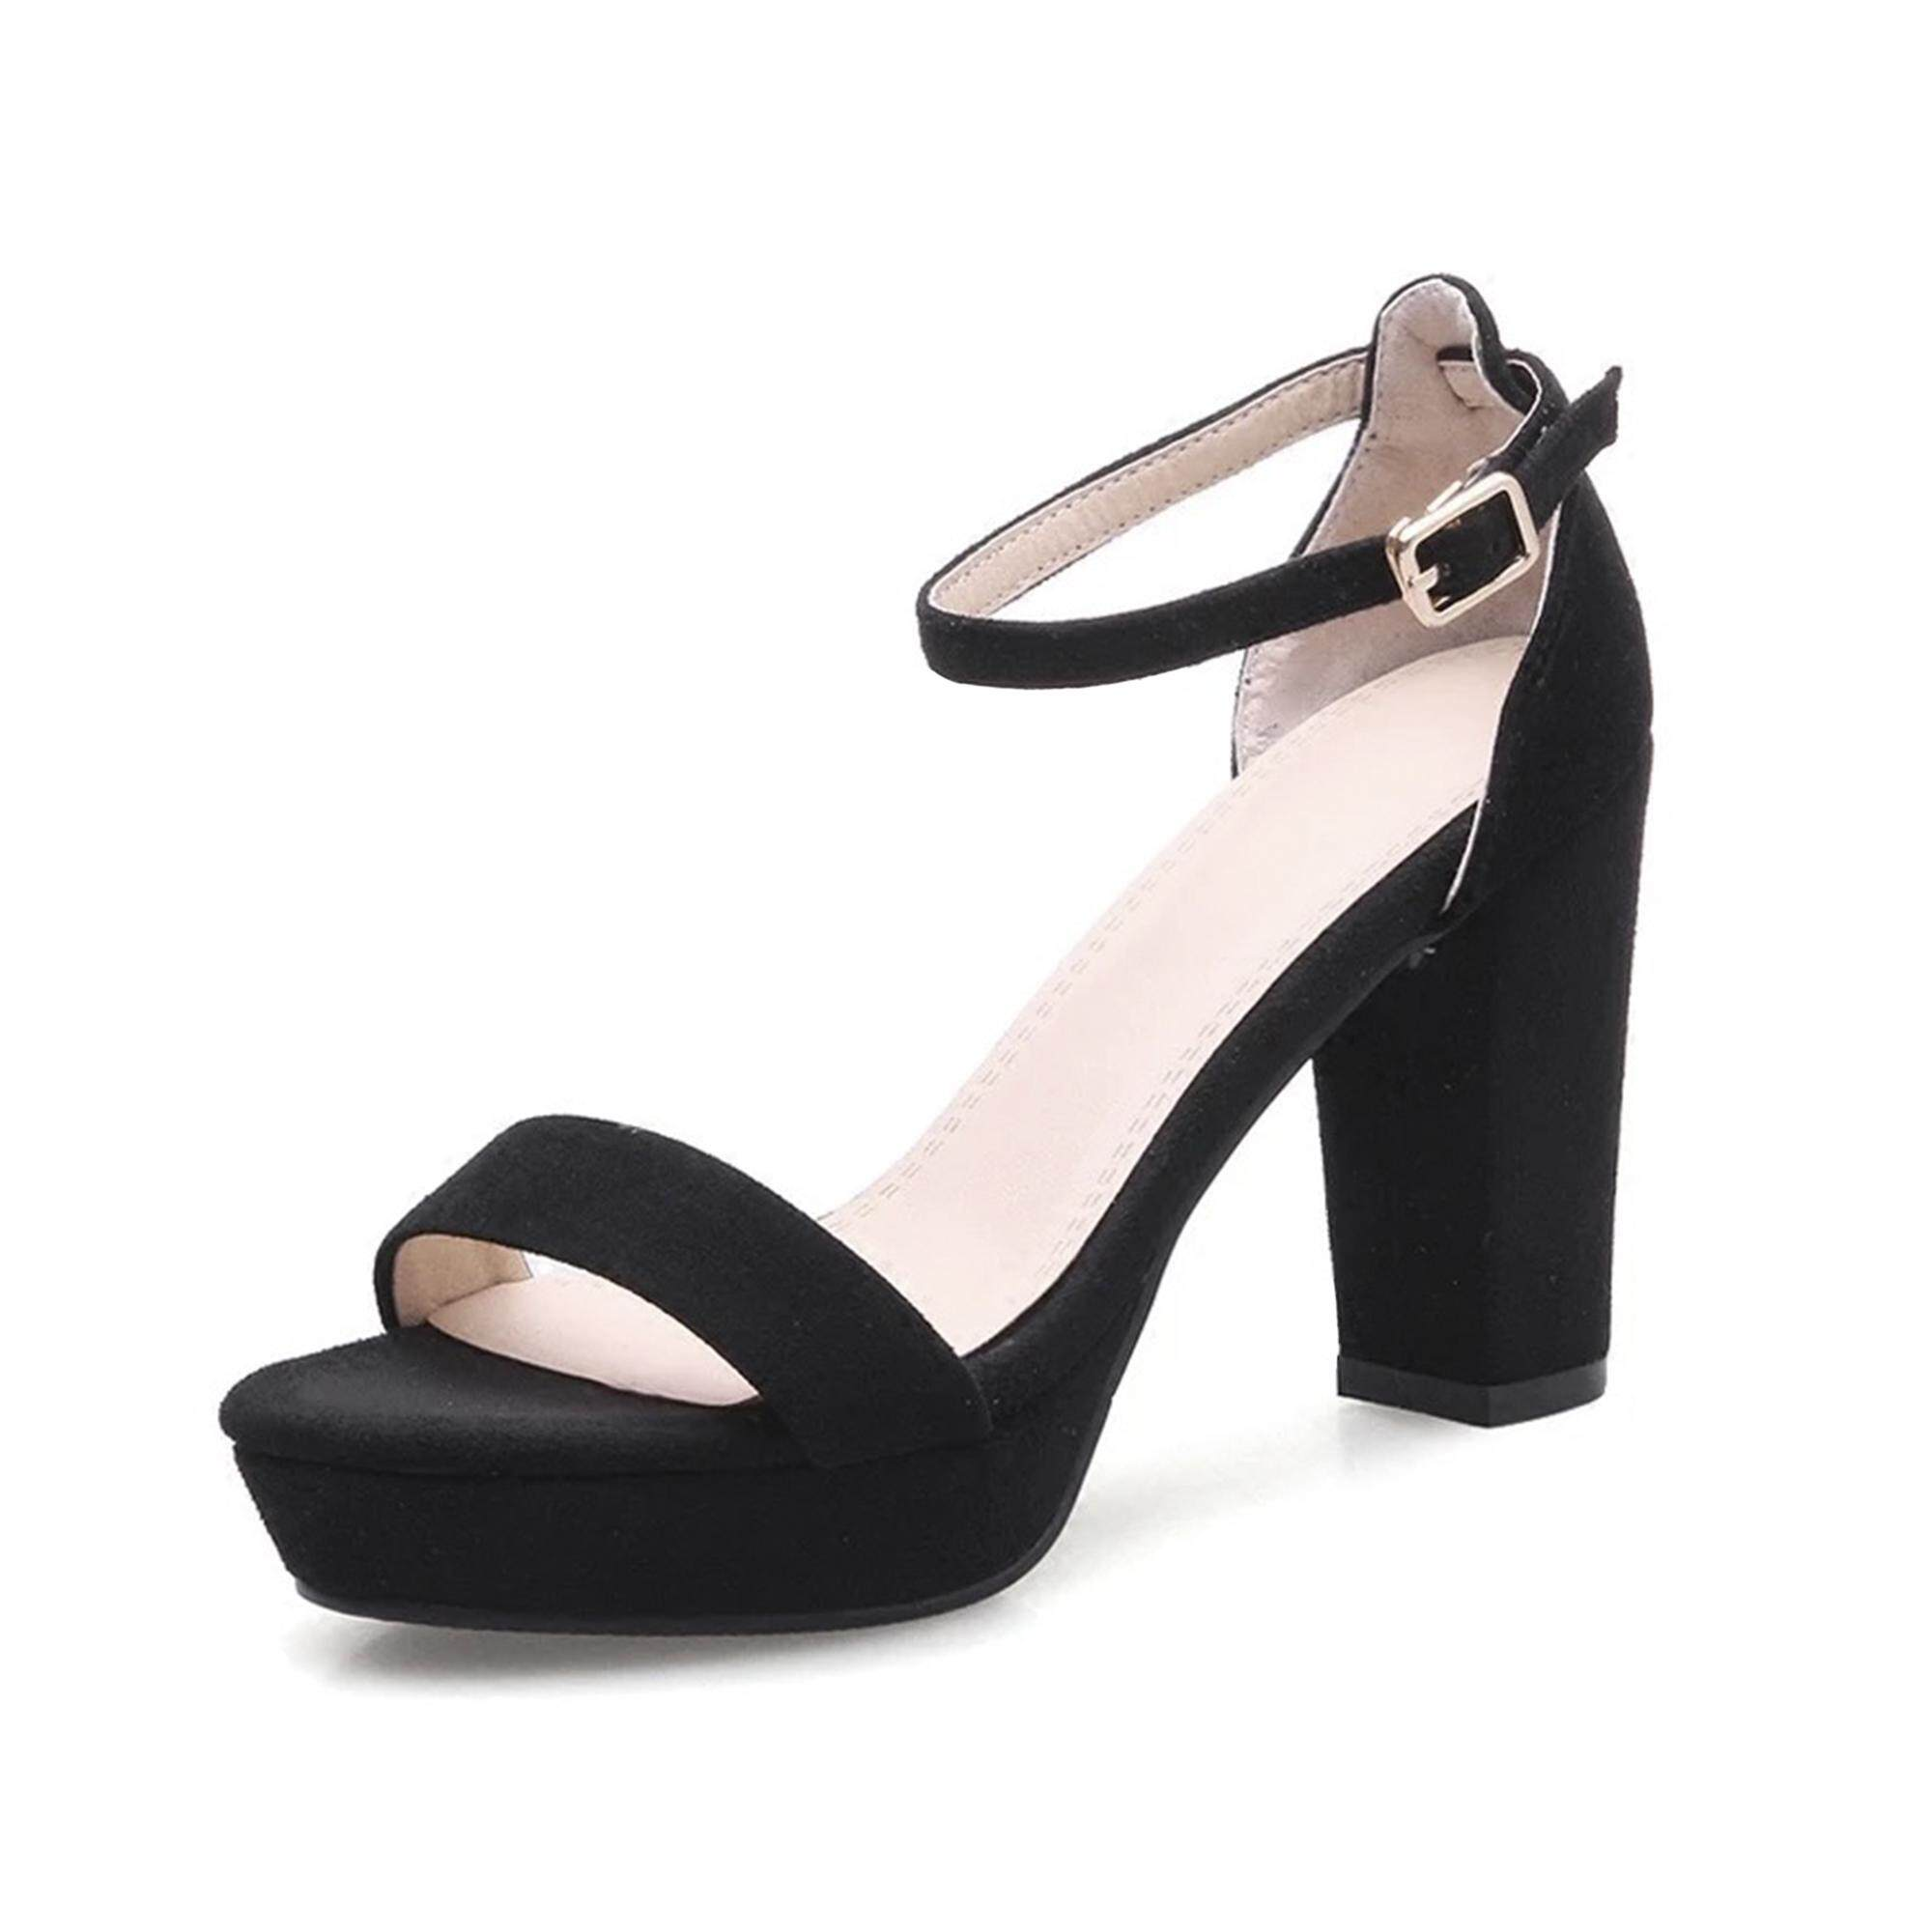 988c19a897 Women High Heels Sandals With Best Online Price In Malaysia